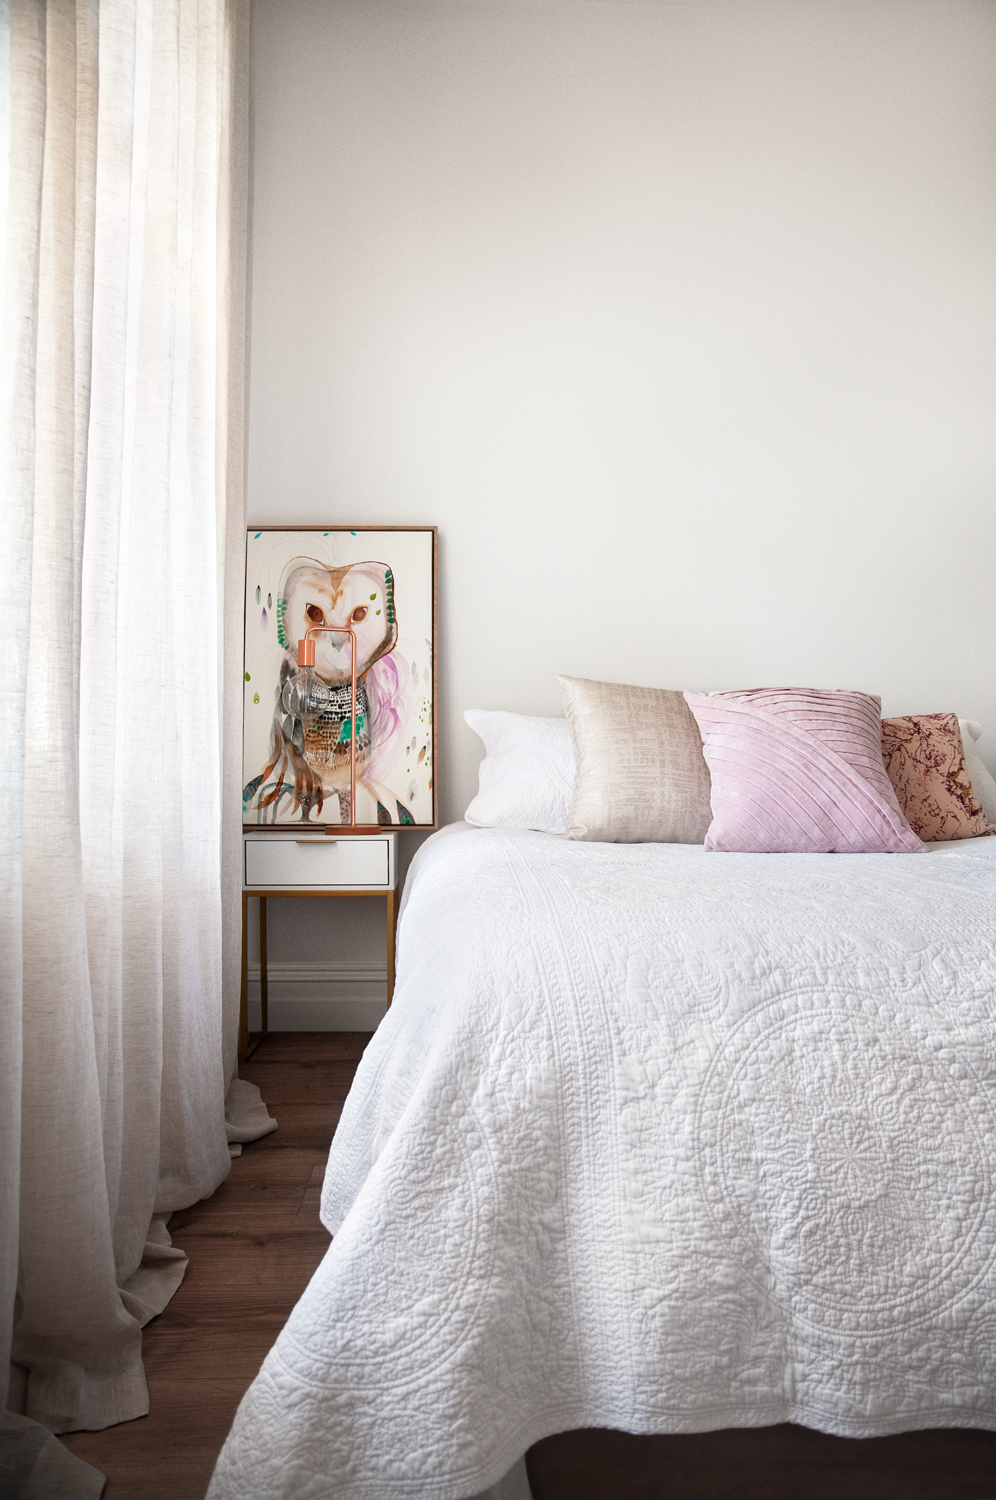 White bed with pink cushions and a painting on bedside table